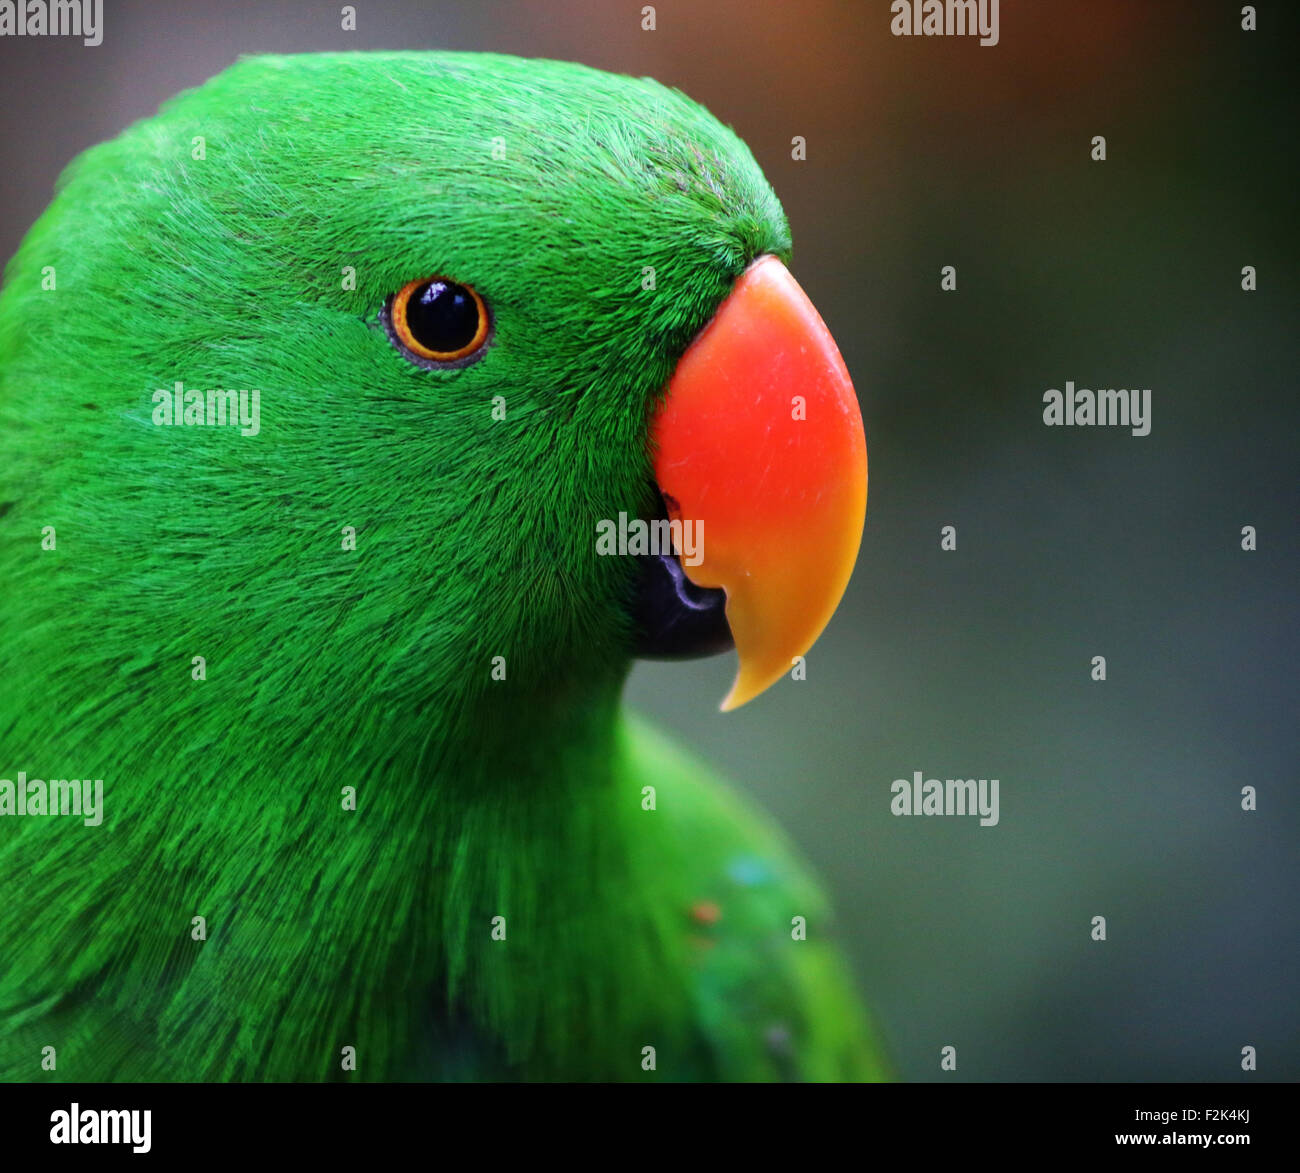 Eclectus Parrot - Stock Image